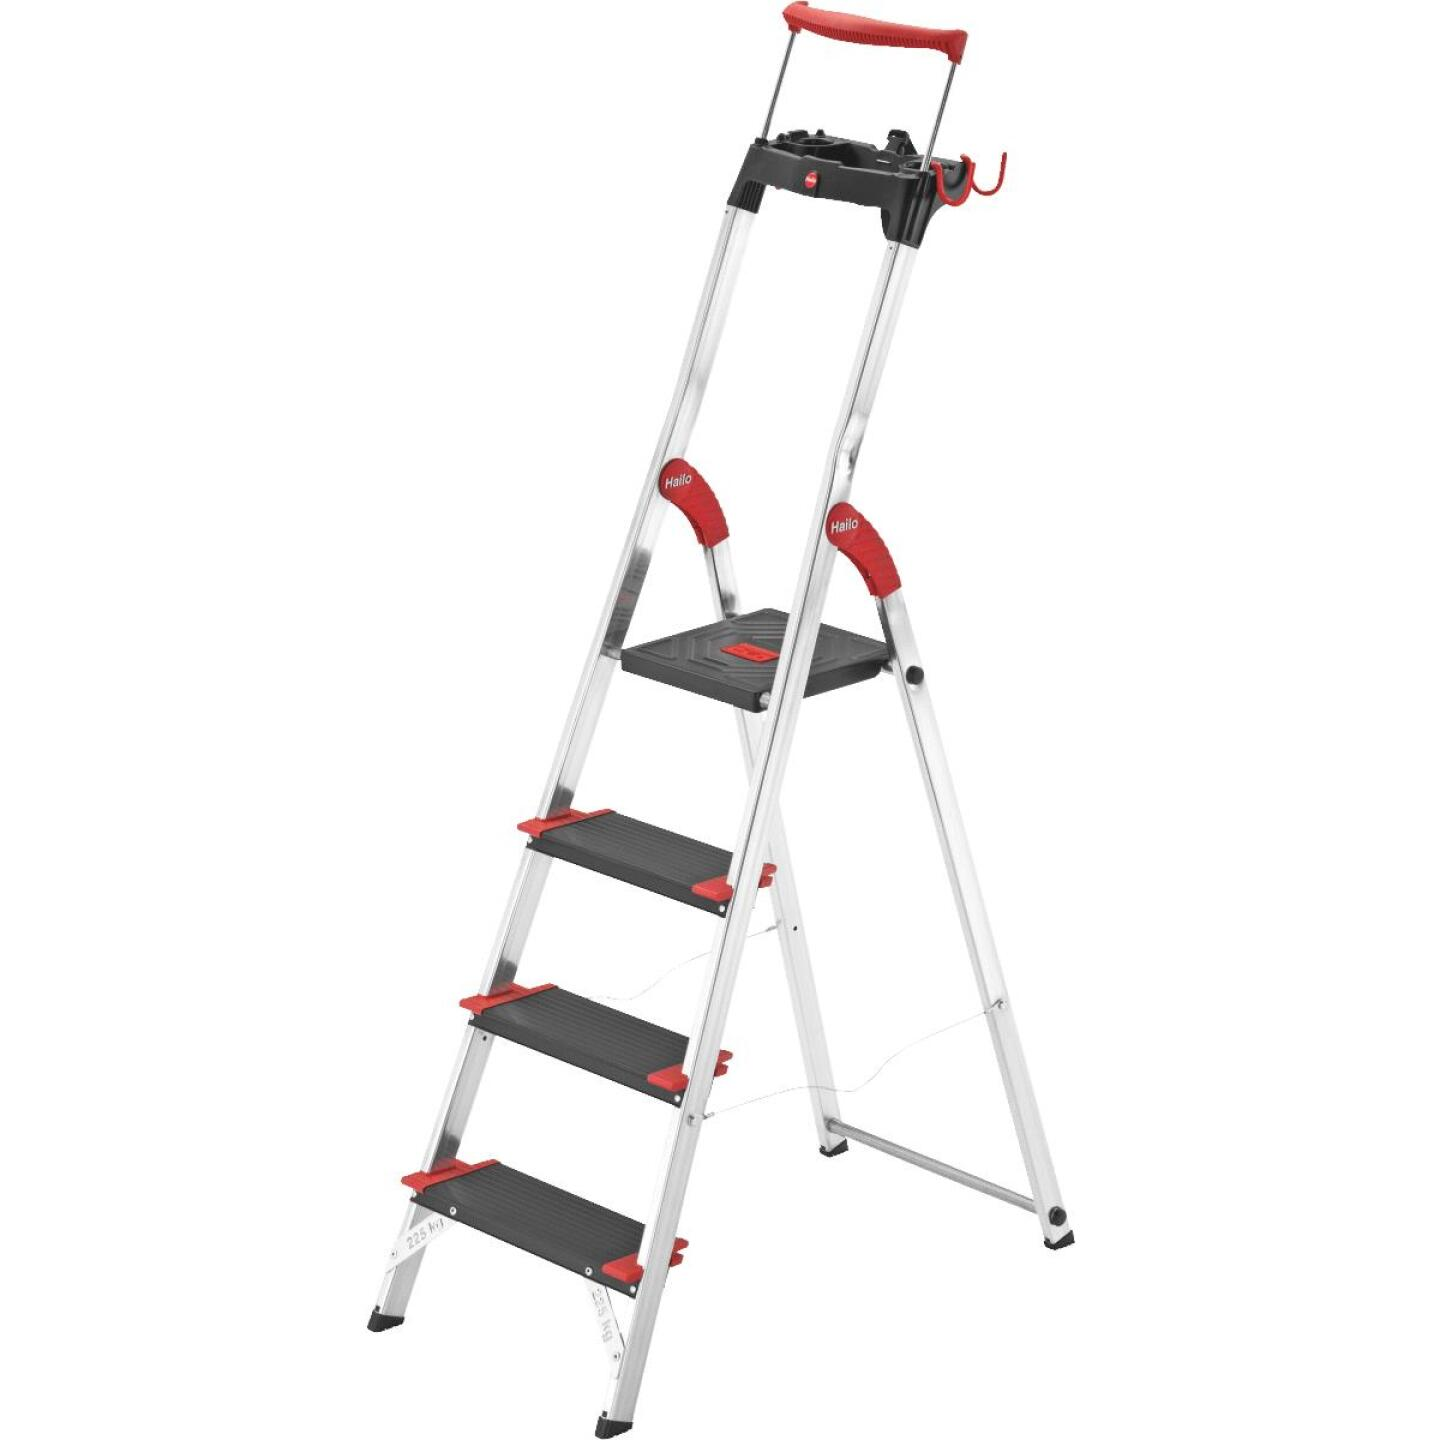 Hailo XXR225 5 Ft. Aluminum Step Ladder with Safety Rail & 330 Lb. Load Capacity Image 1